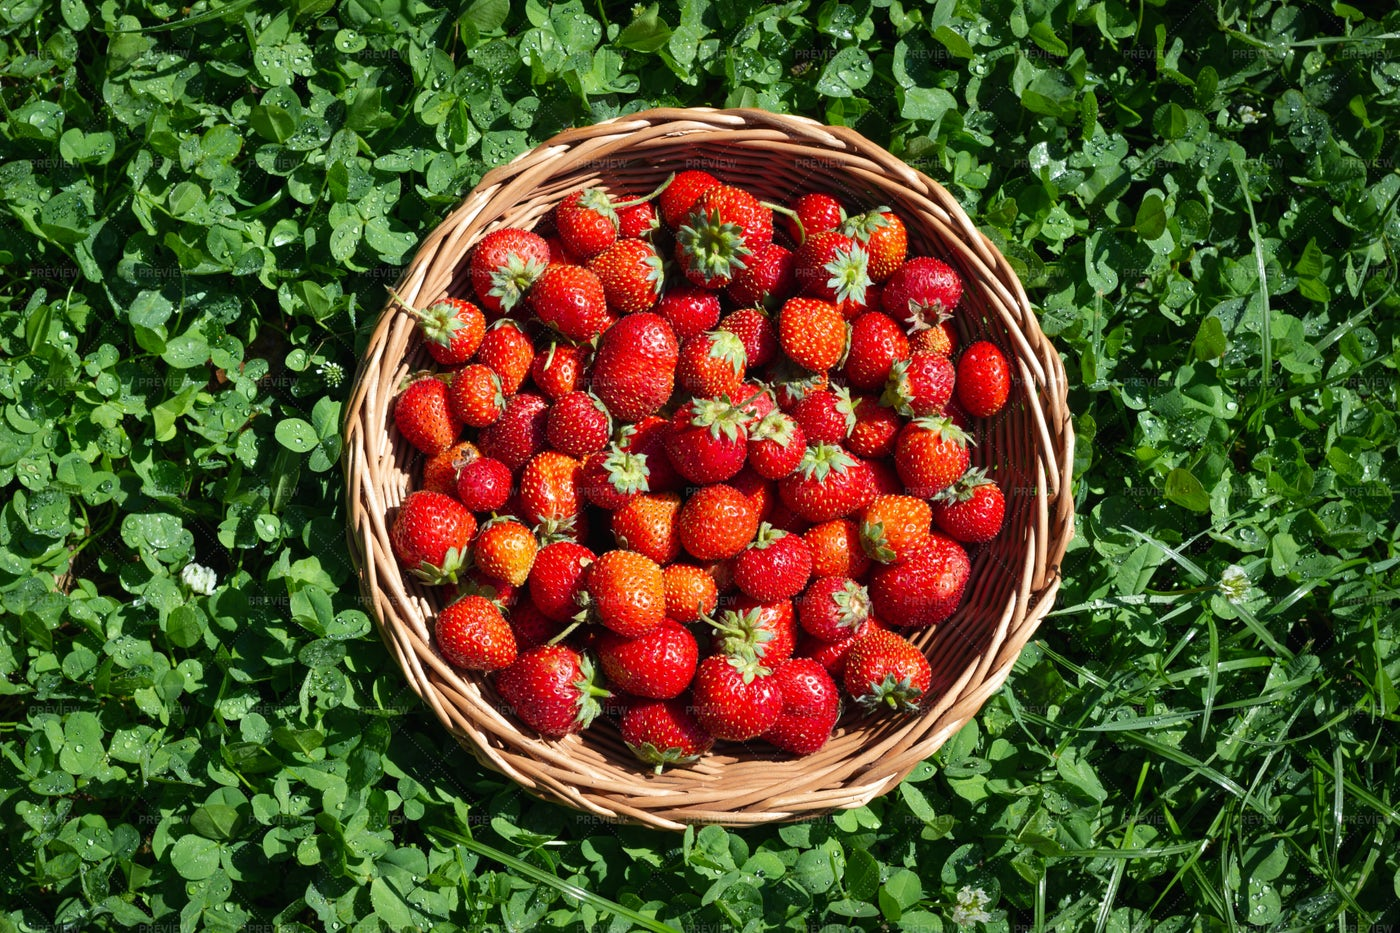 Harvested Strawberries: Stock Photos